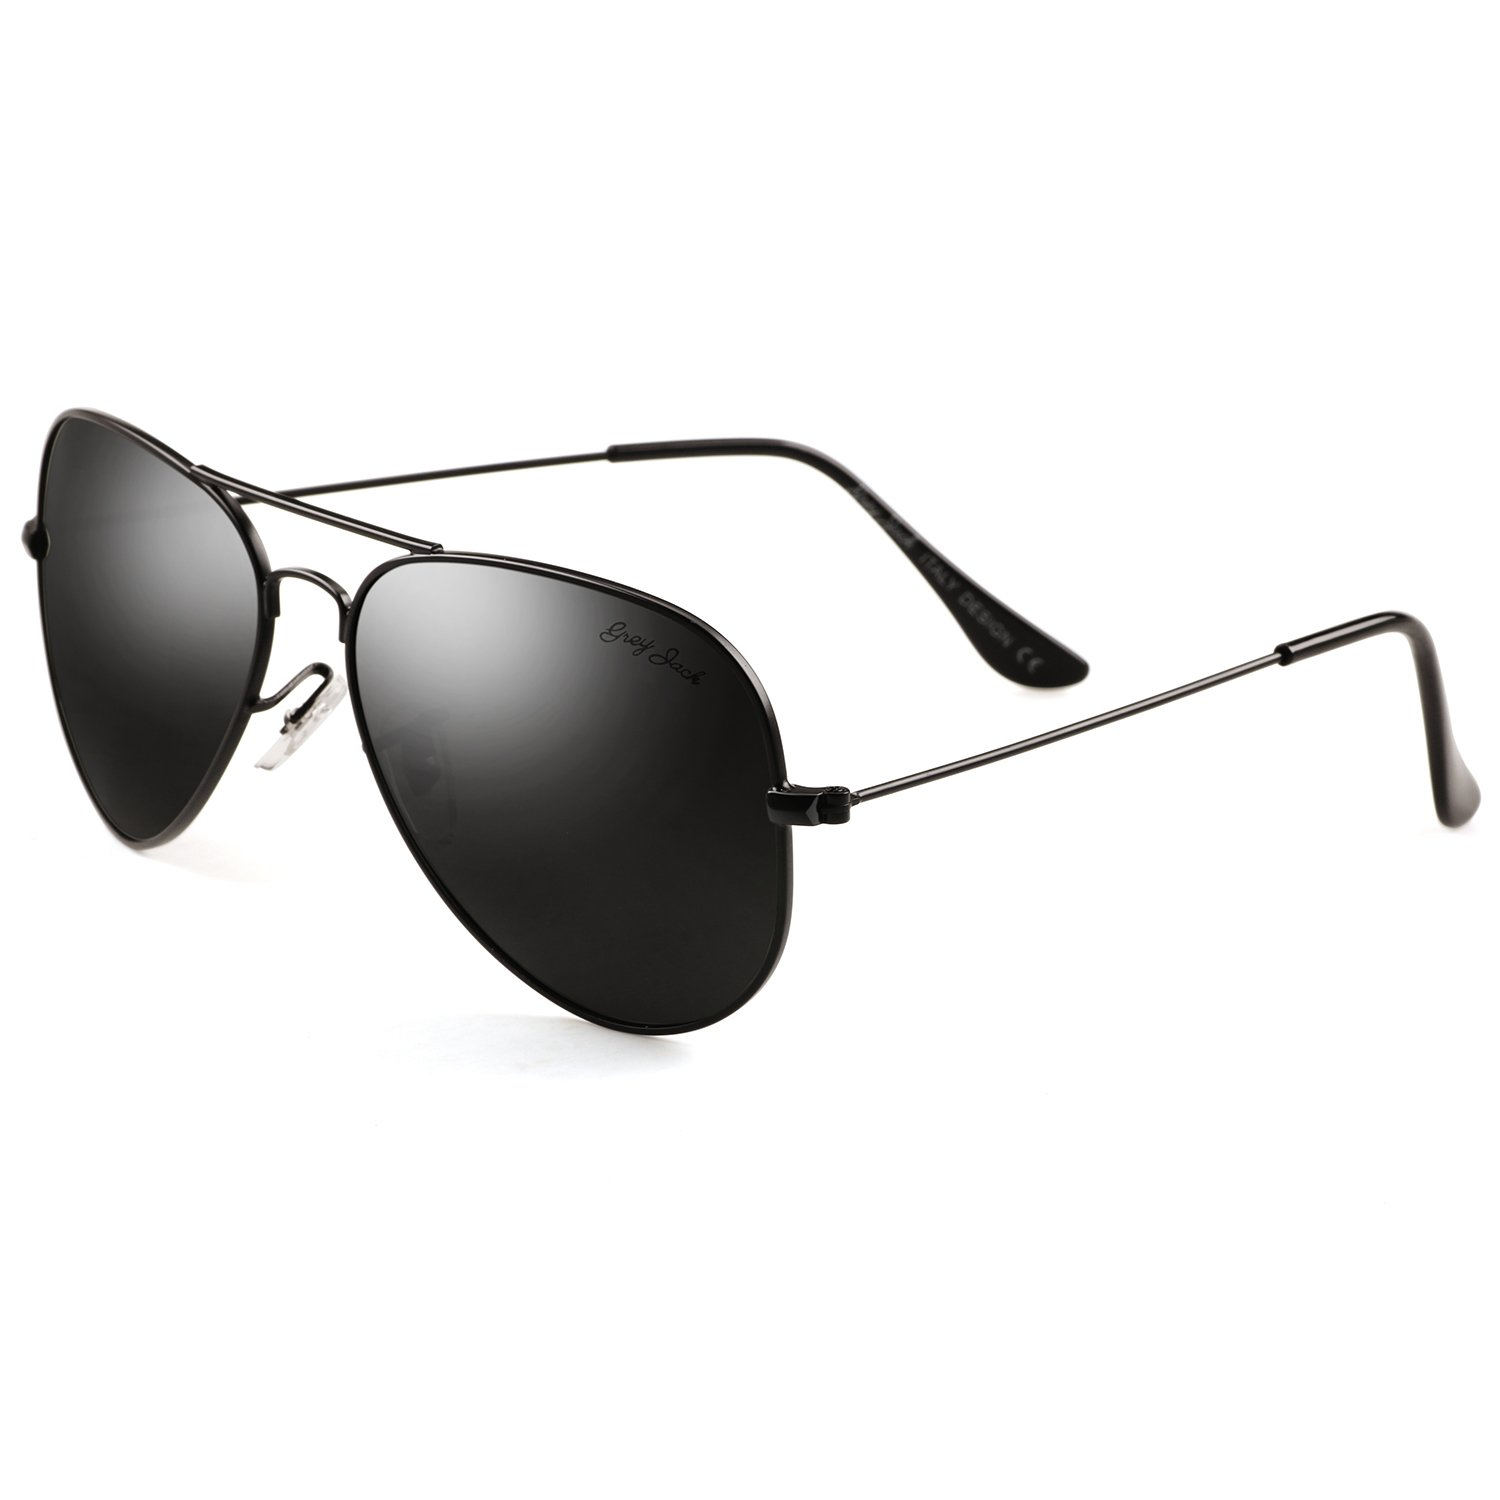 GREY JACK Polarized Classic Aviator Shaped Sunglasses Lightweight Style for Men Women